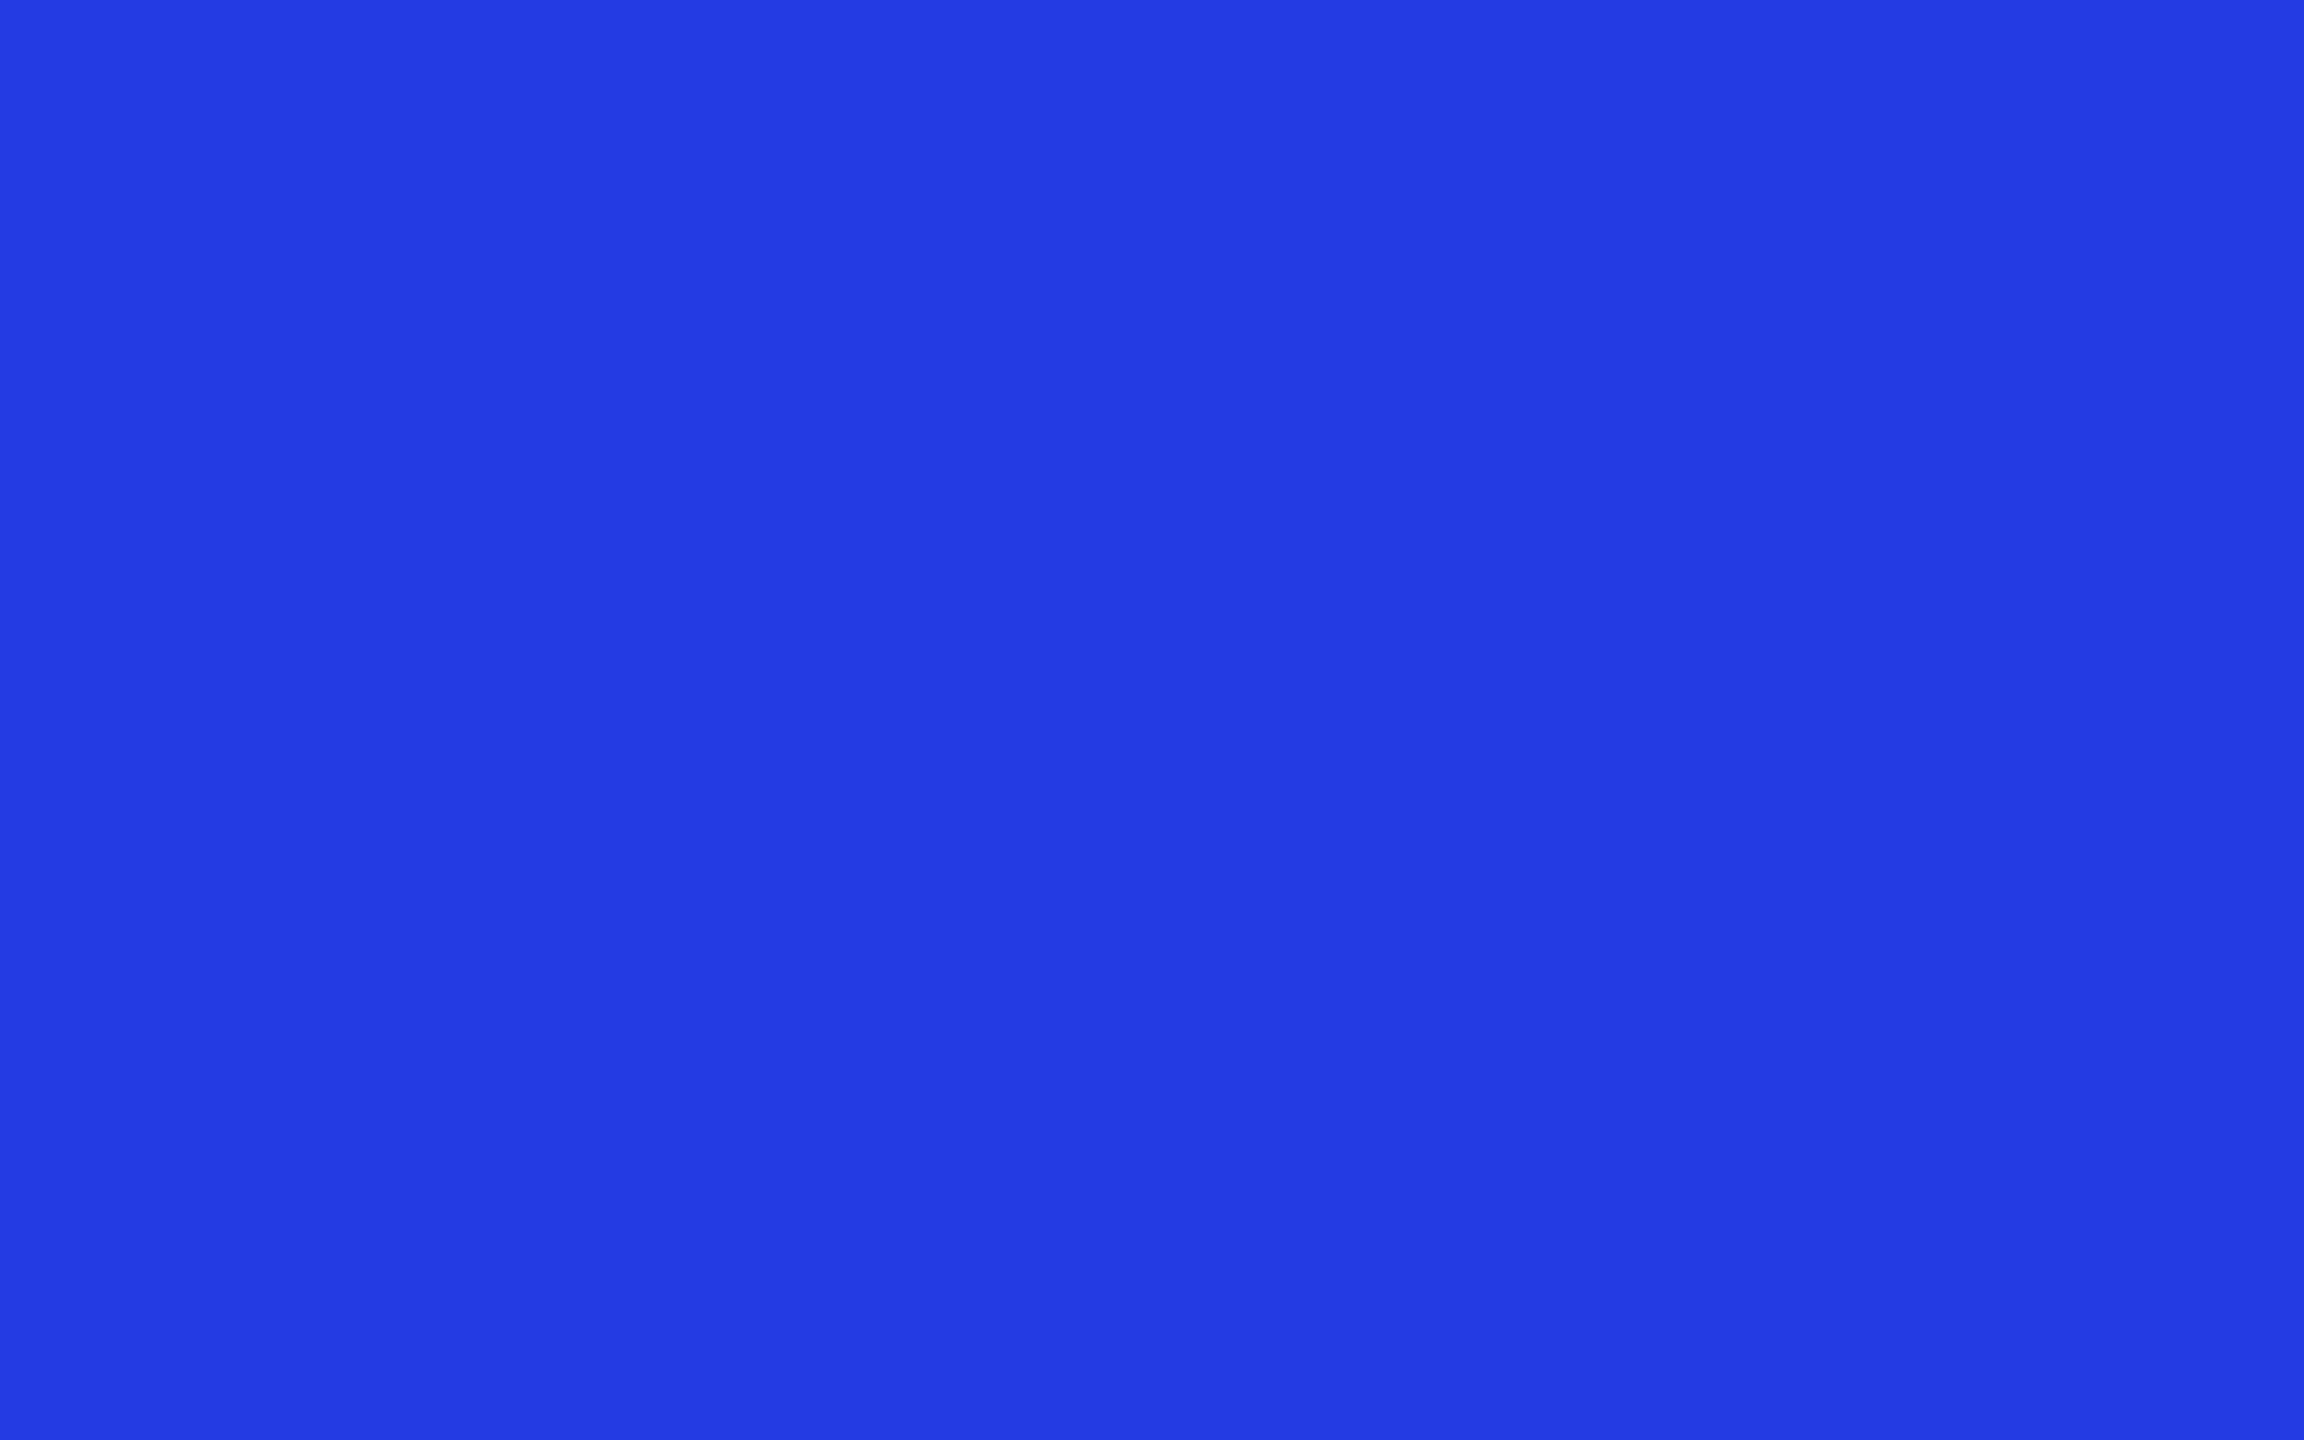 2304x1440 Palatinate Blue Solid Color Background